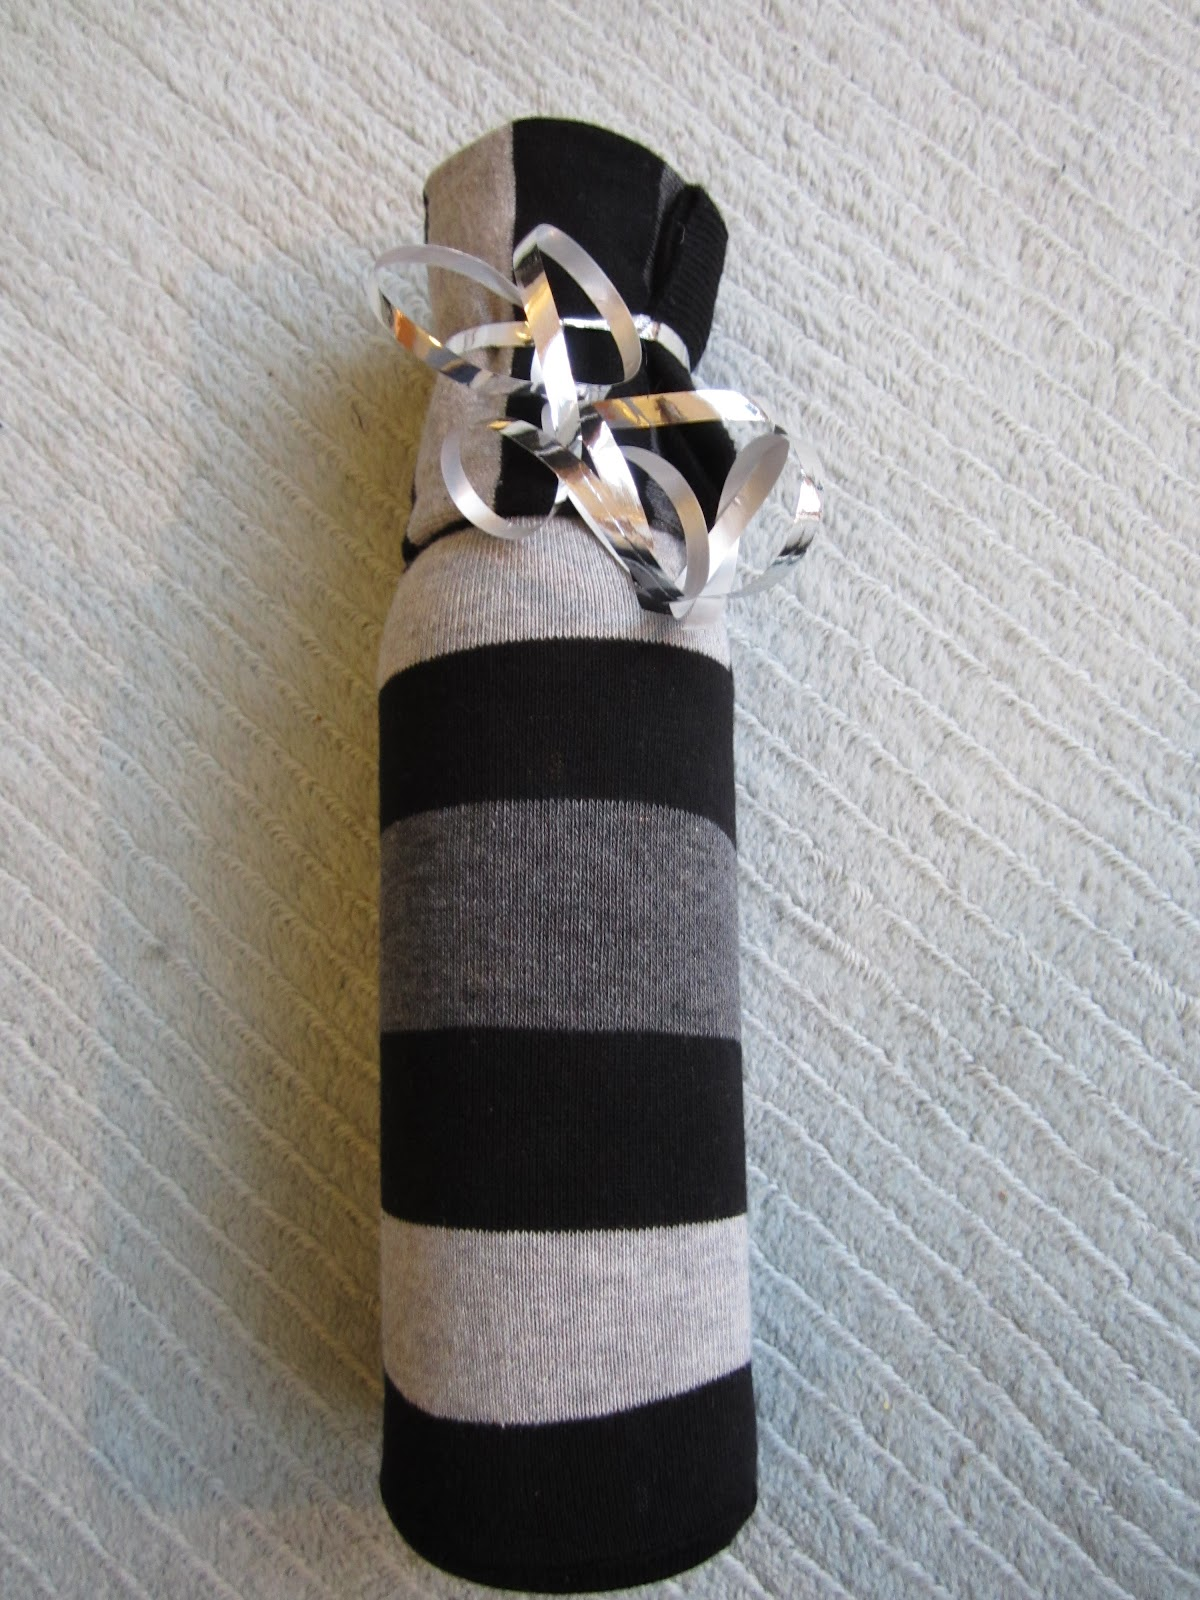 Lovely Wine Gift Wrapping Ideas Part - 12: Gift Wrap Wine Bottles Dinner Party Ideas